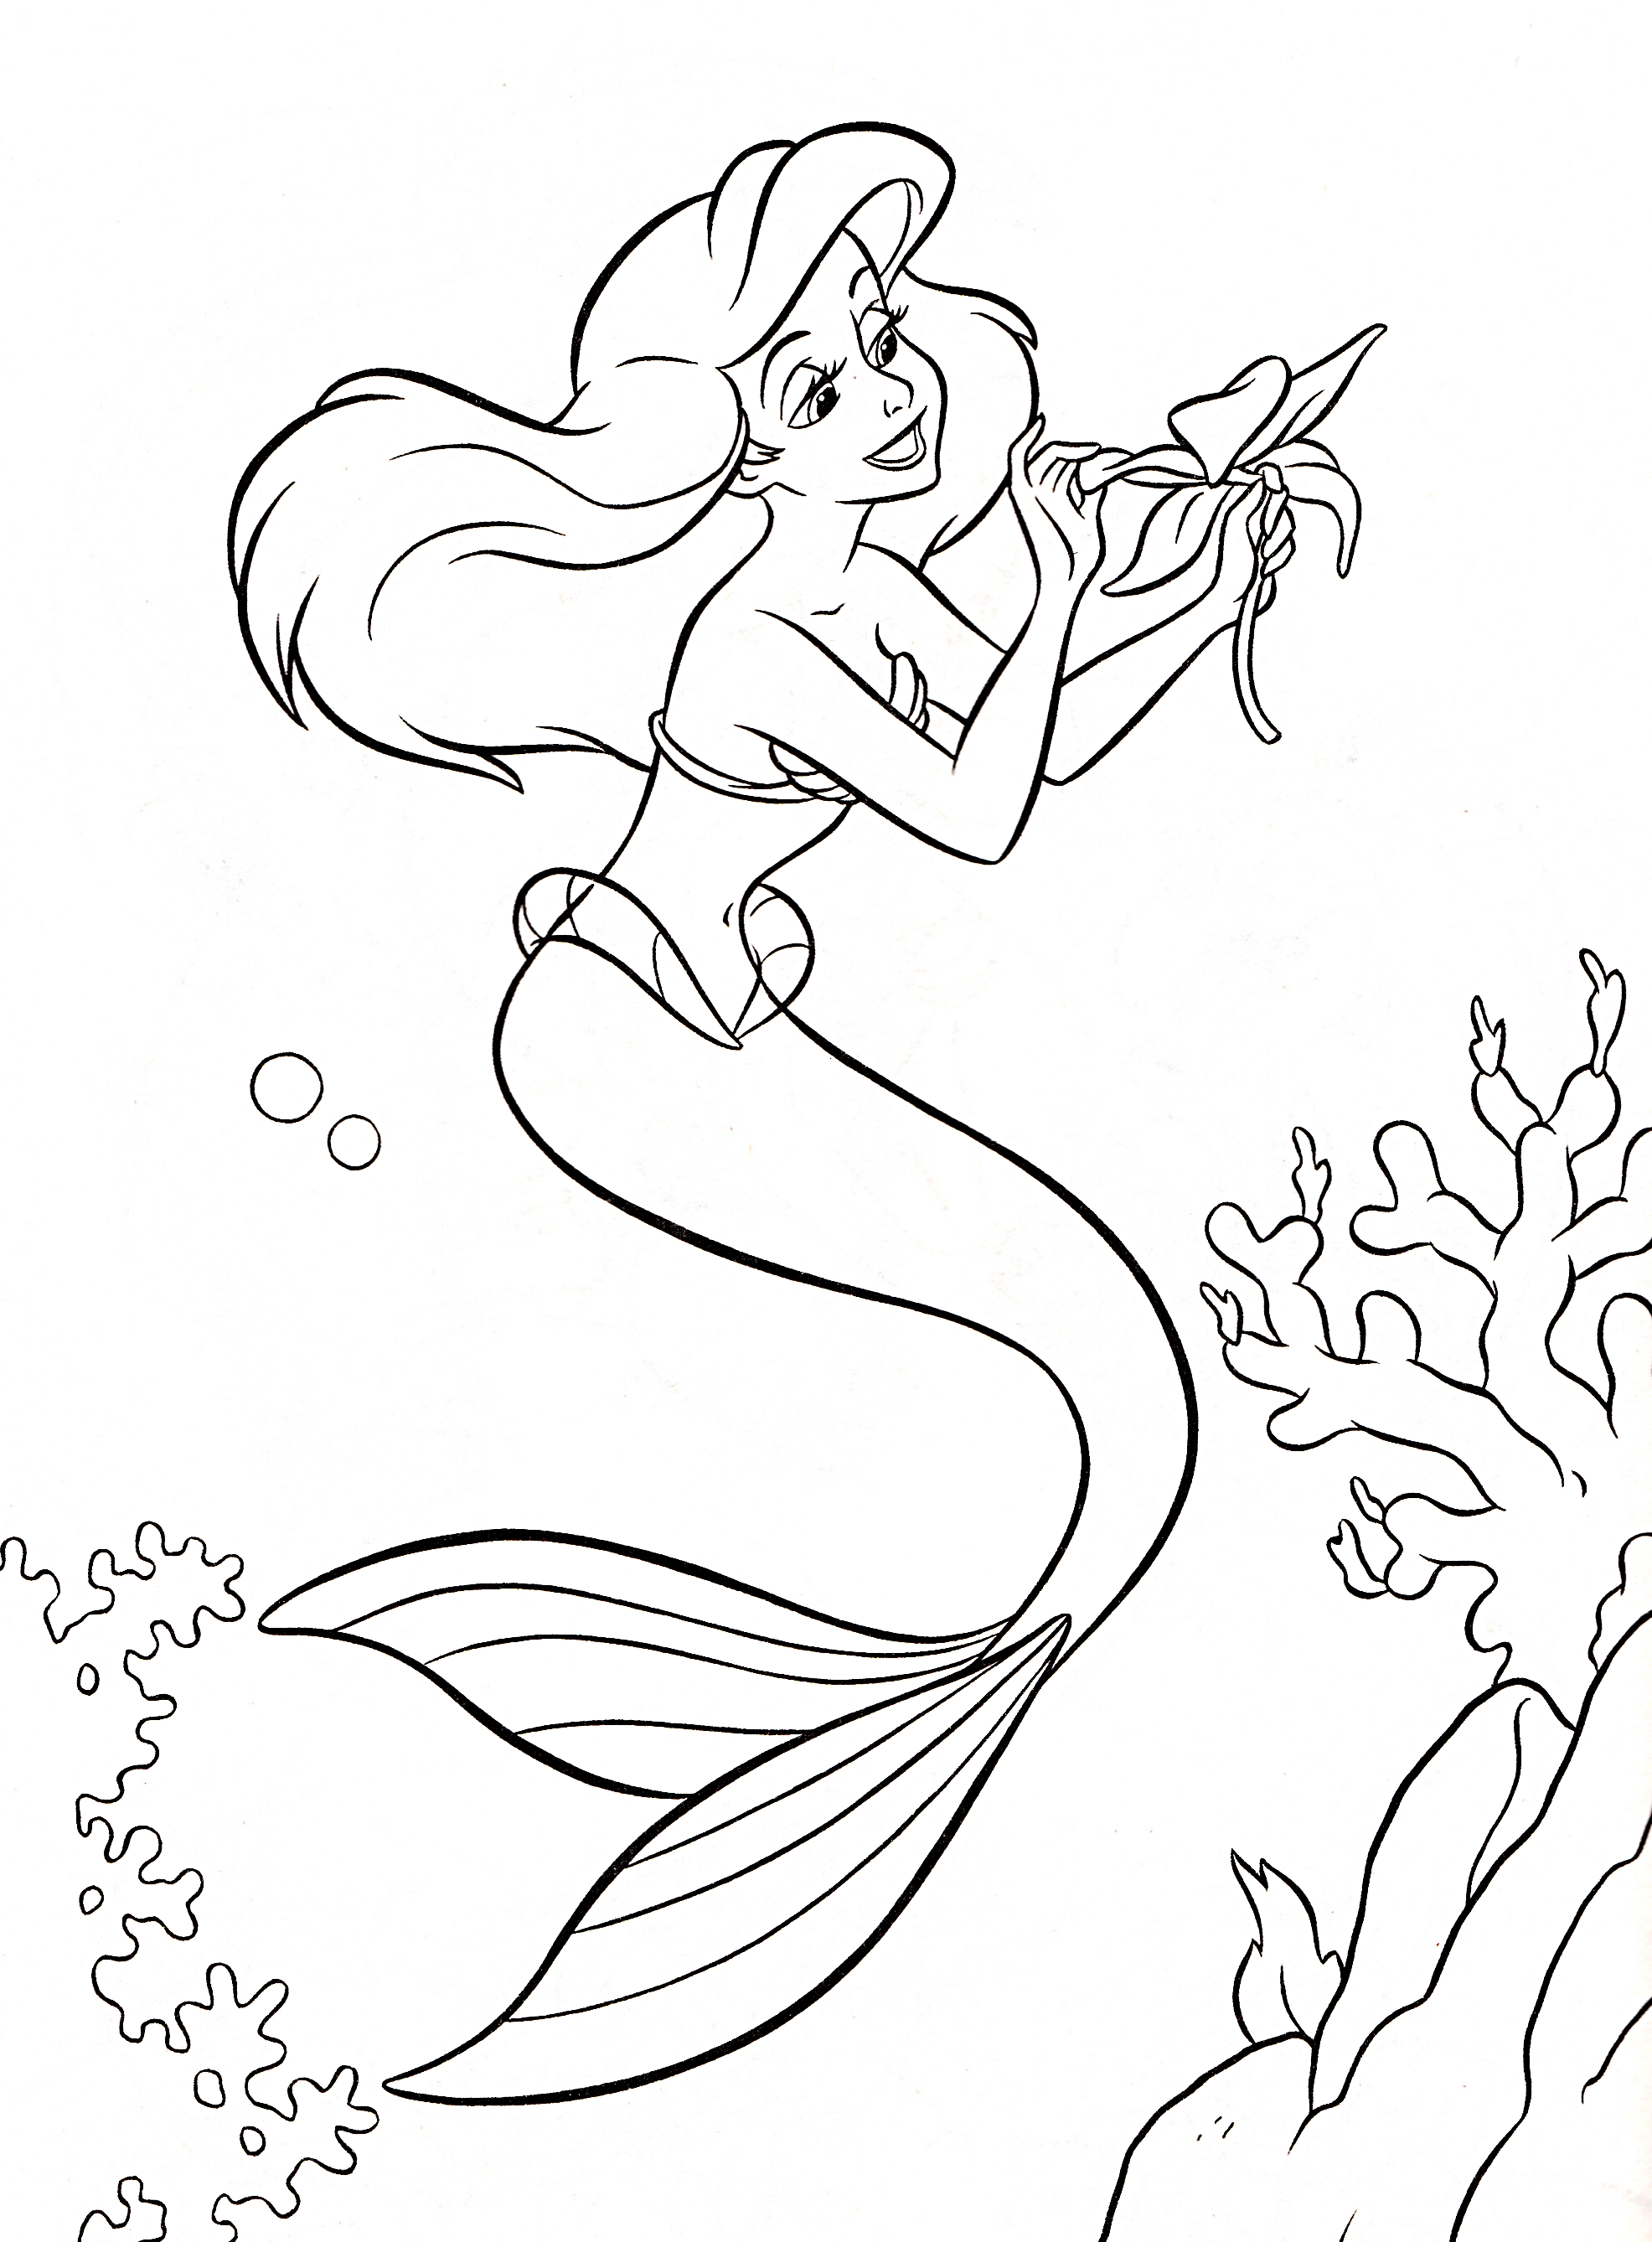 coloring pages princess image detail for free princess coloring